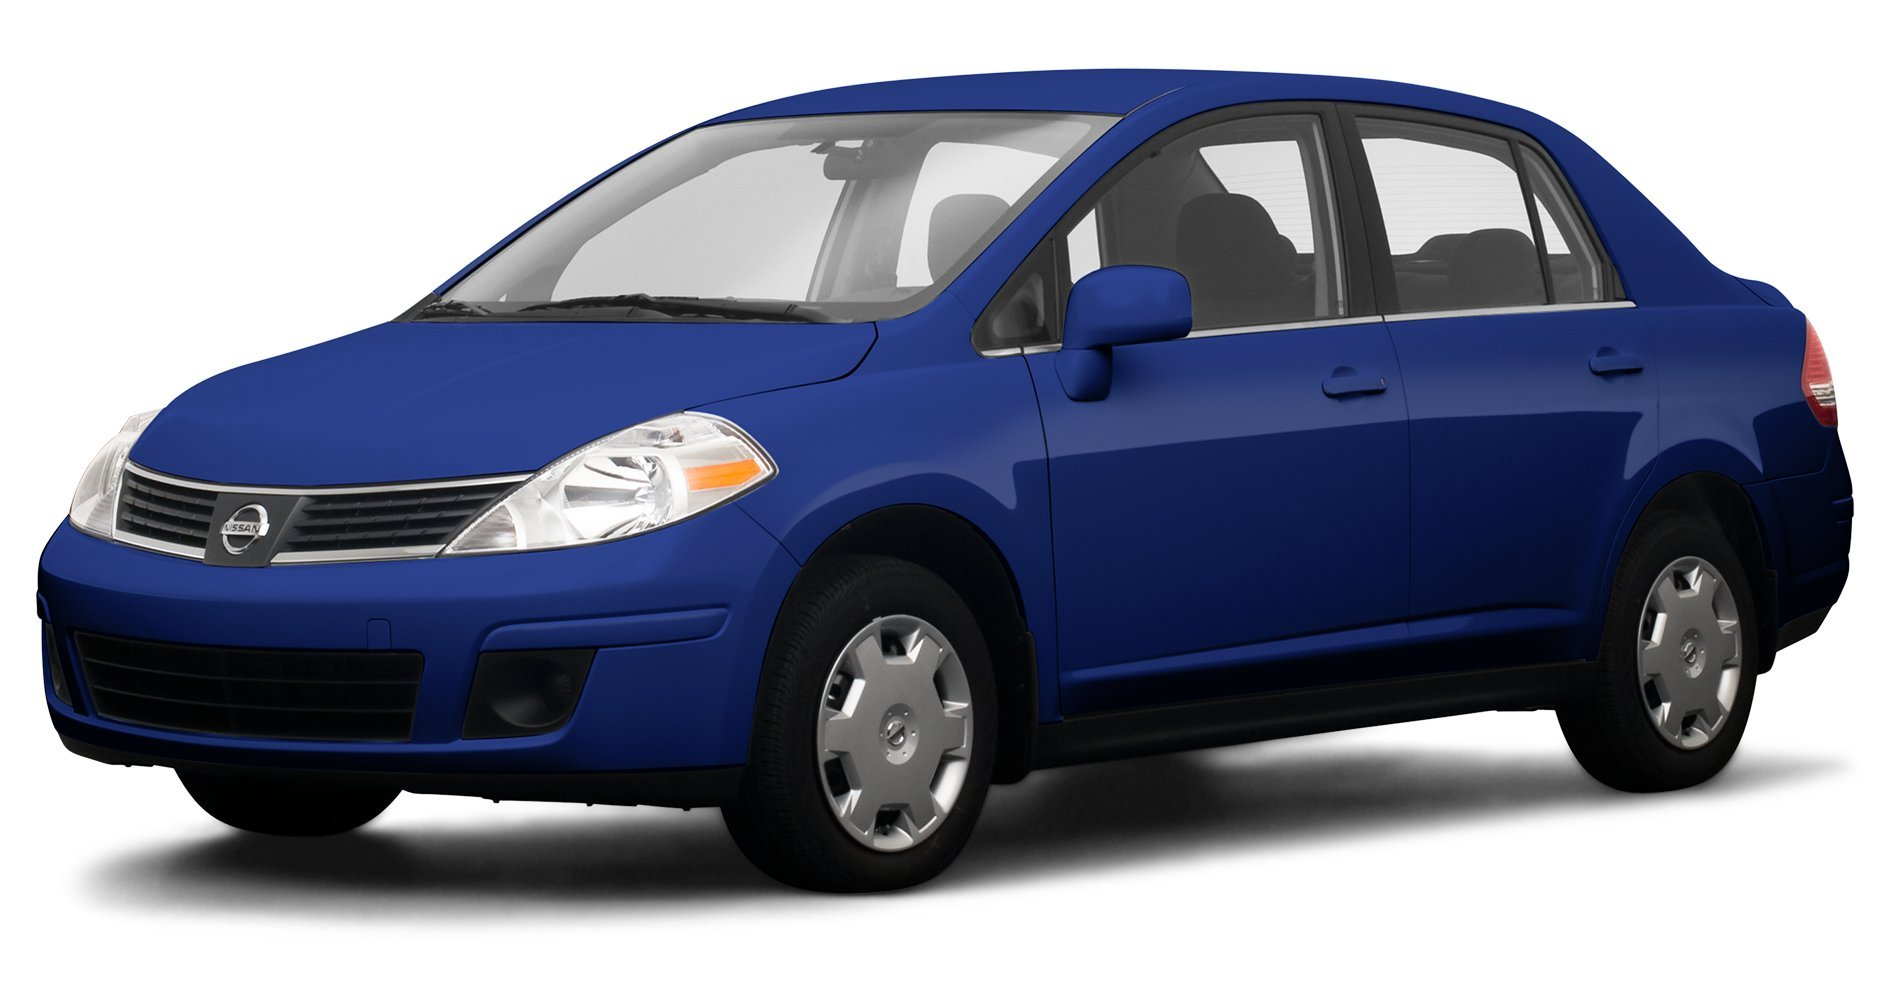 ... 2009 Nissan Versa 1.8 S, 4-Door Sedan 4-Cylinder Automatic Transmission.  2009 Hyundai Accent ...